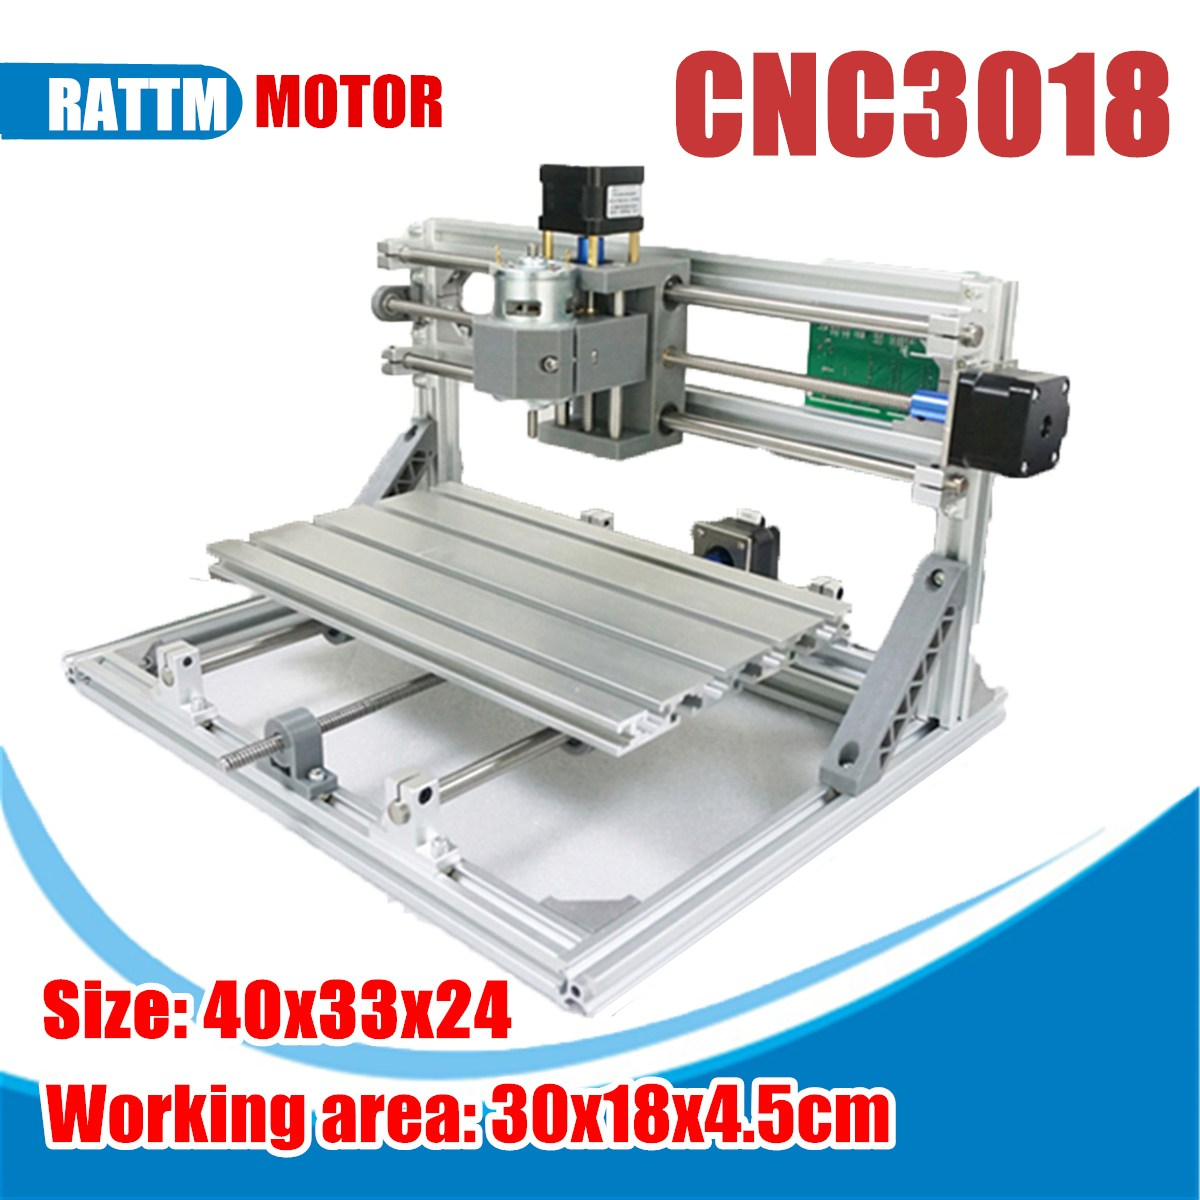 3 Axis 3018 ER11 GRBL Control DIY Mini CNC Router Laser Machine Pcb Pvc Milling Wood Router Wood Router Laser Engraving